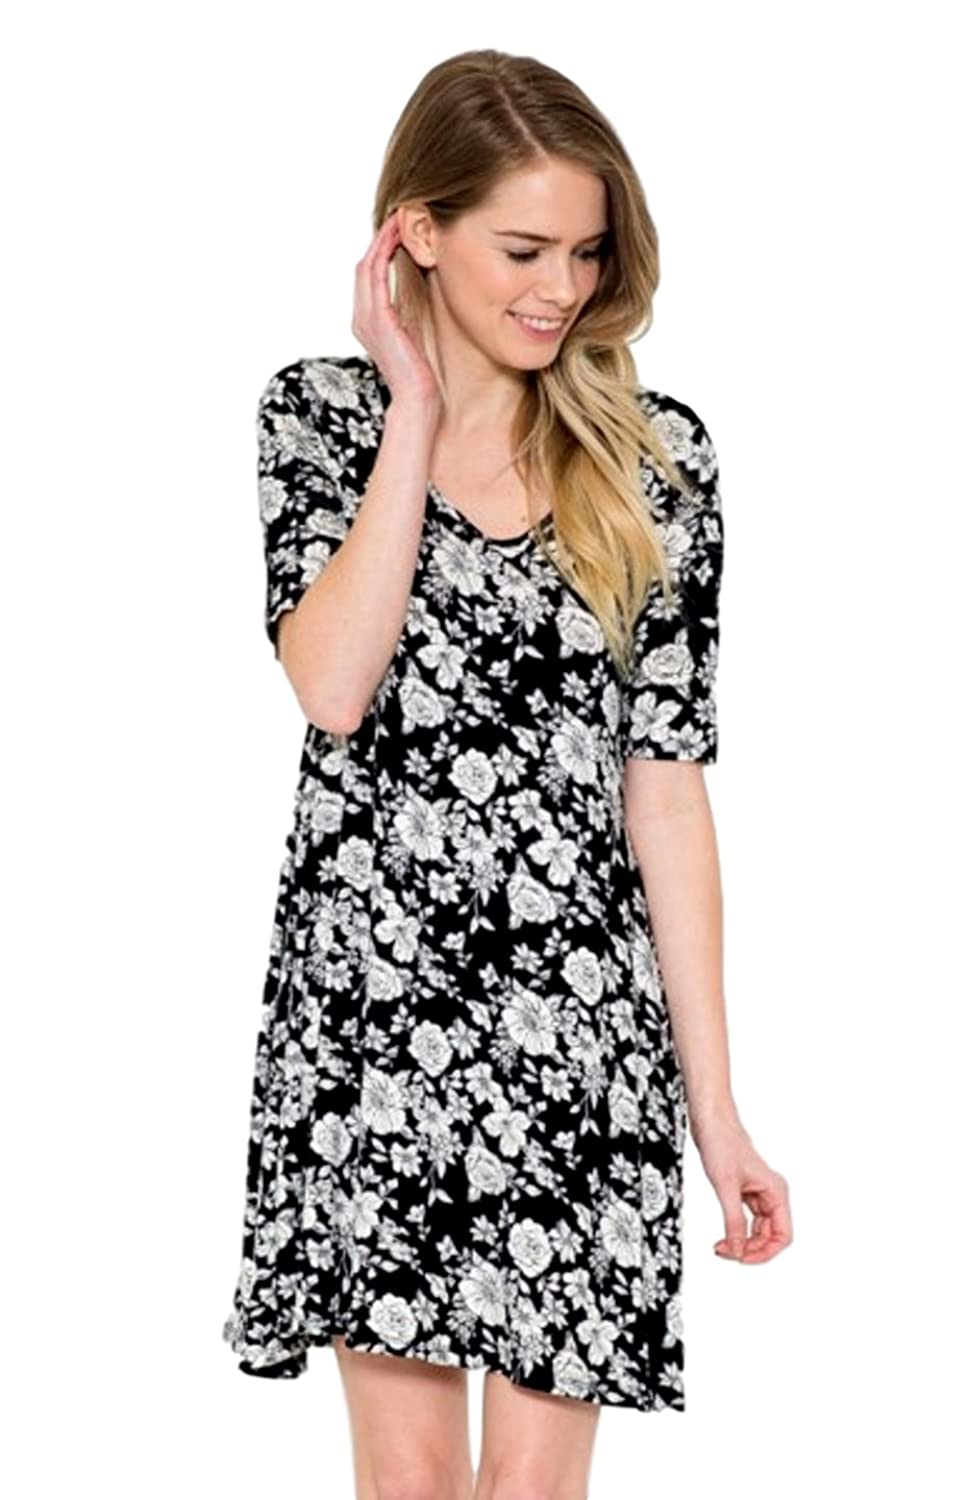 2LUV Women's 3/4 Sleeve Floral Print Casual Dress